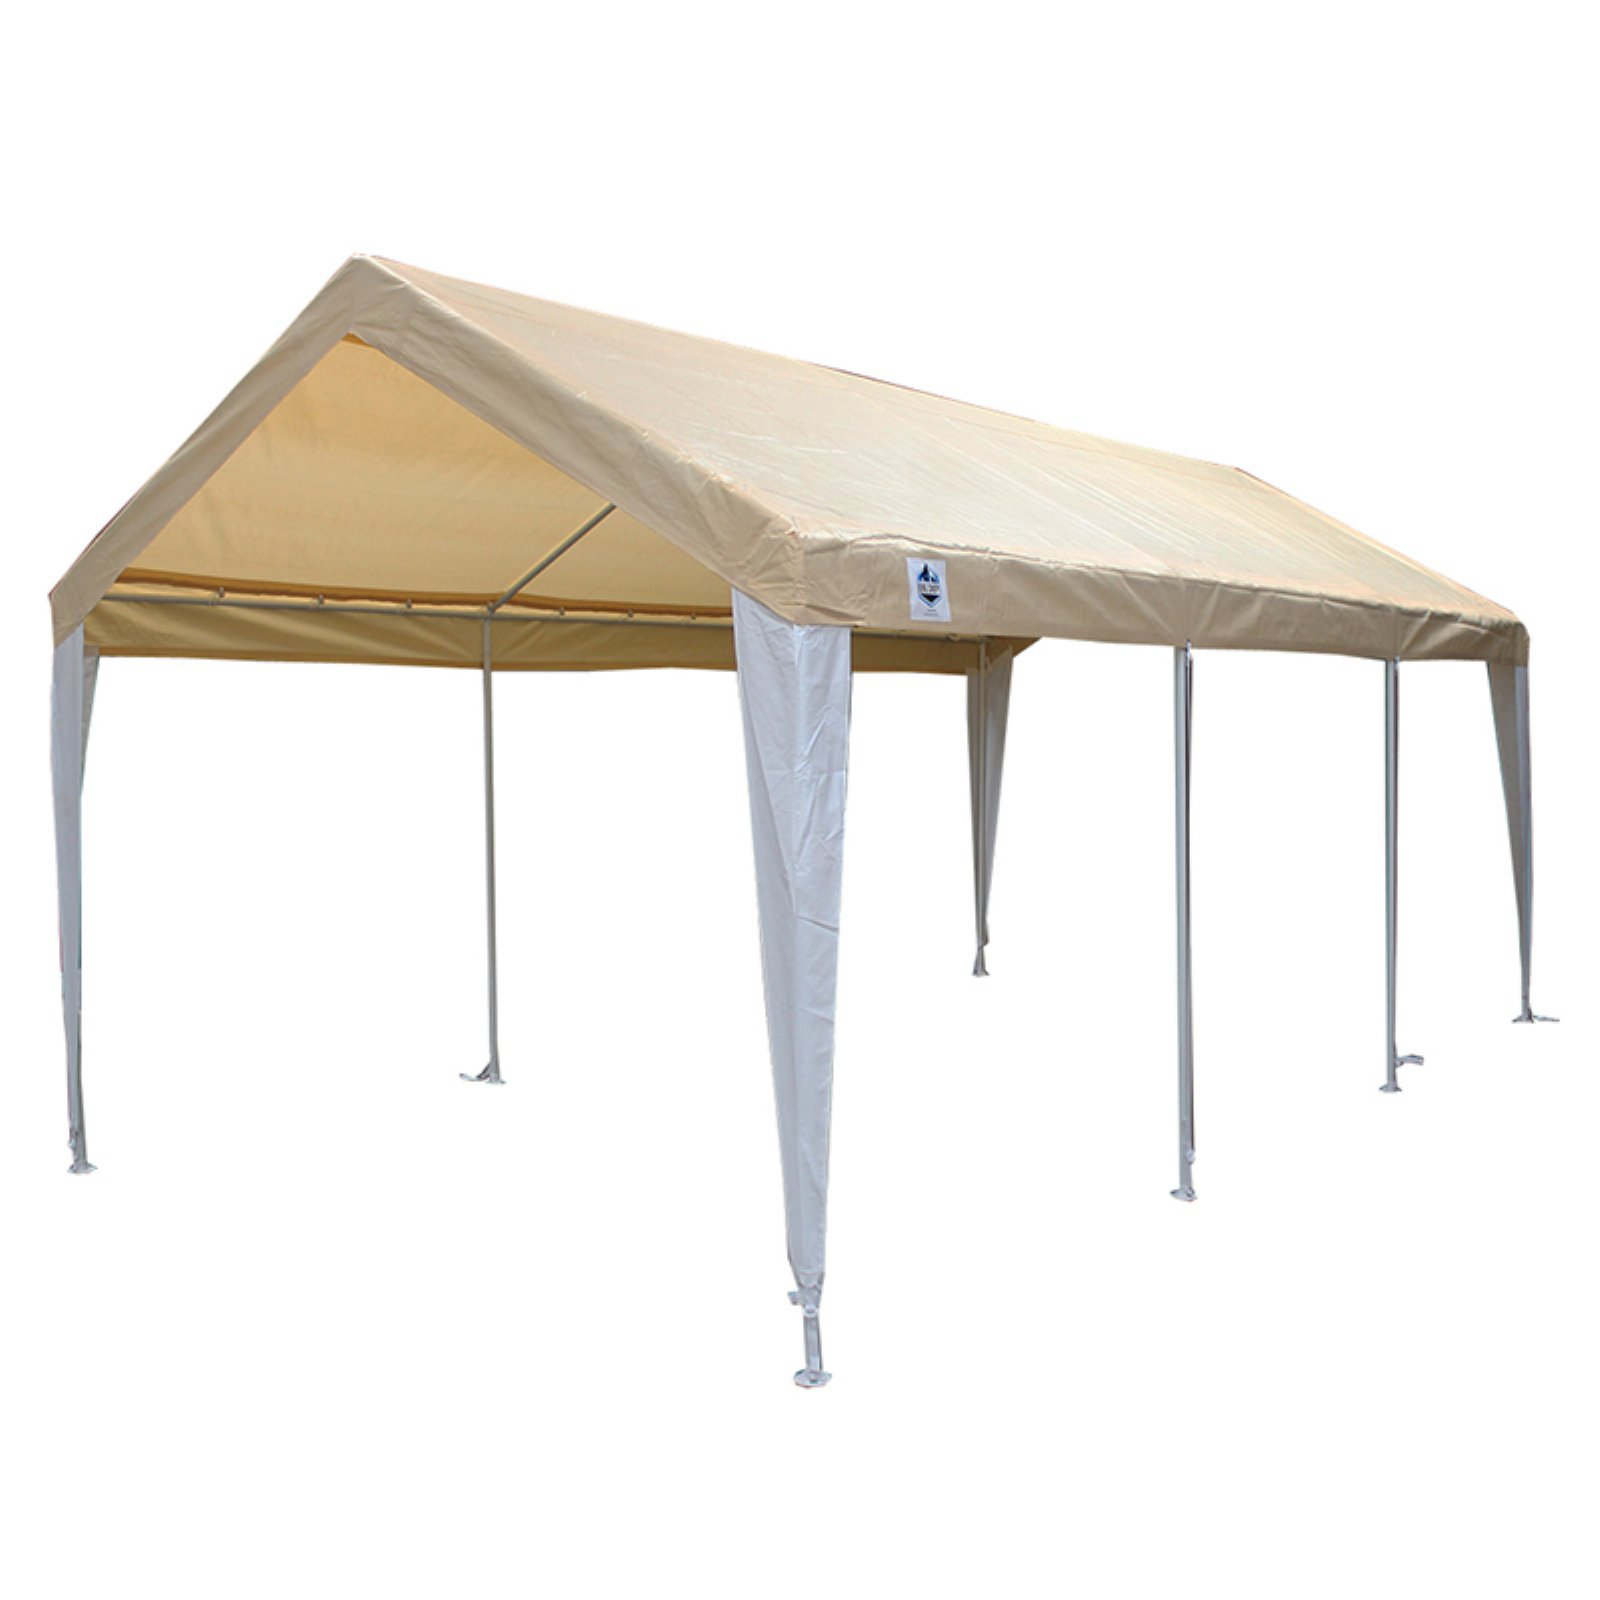 King Canopy 10 x 20 ft  Hercules 8 Leg Two Tone Carport